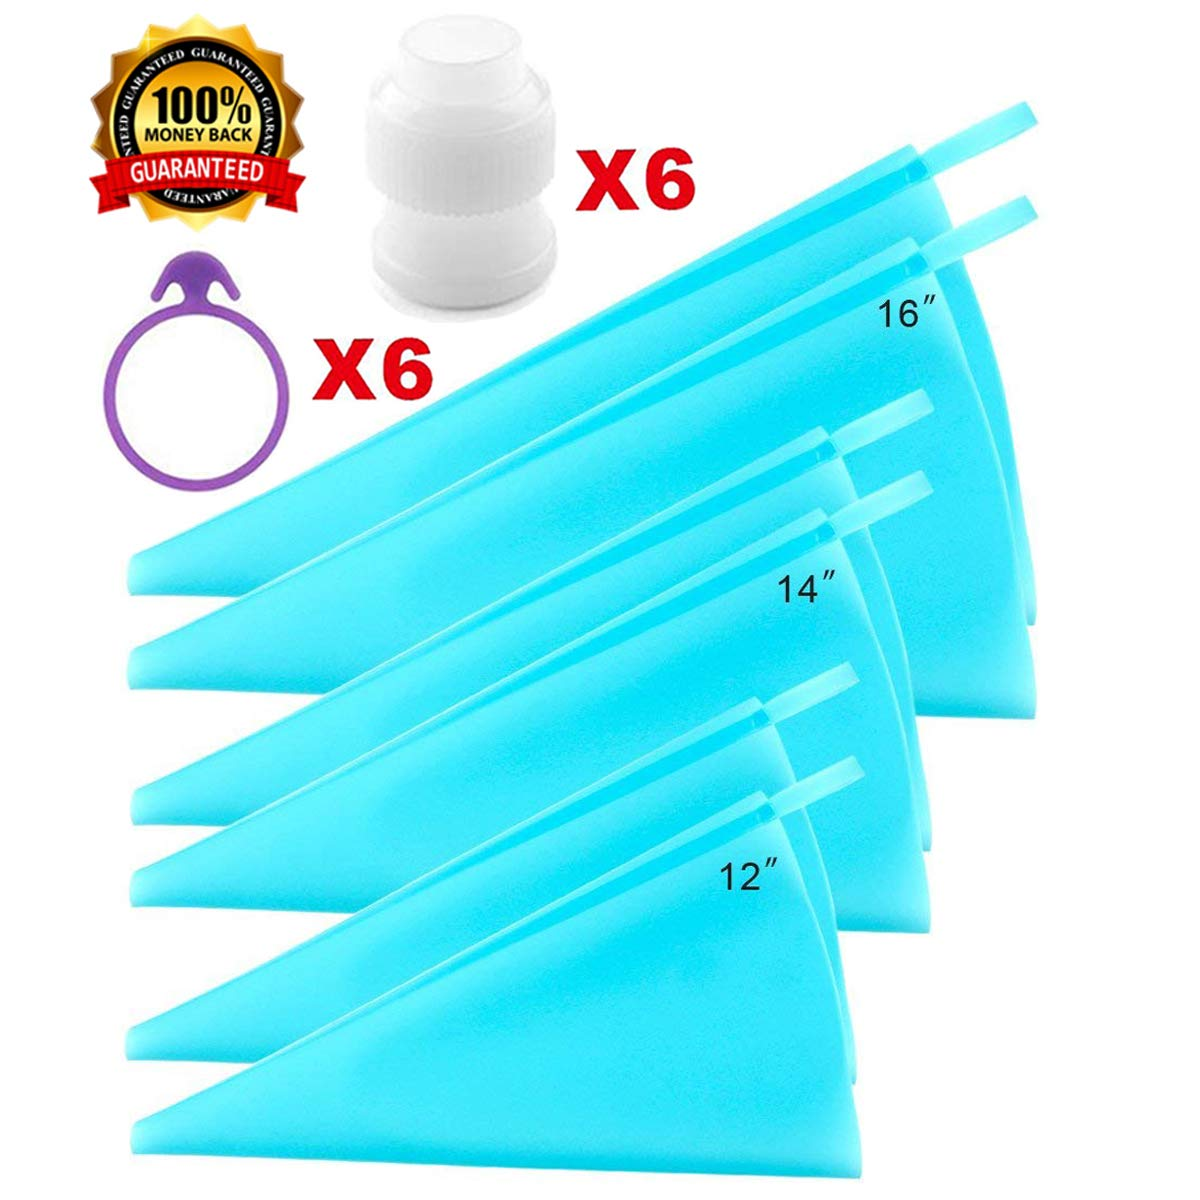 "Piping Bags, Icing Bags, Frosting Bags,3 Sizes Cake Decorating Bags Tips Tools(12"" +14""+16"")- 6 Pack, Silicone Piping Pastry Bags Bonus 6 Icing Couplers and 6 Icing Bags Ties Fit to Standard Size Tips LVGOOD"